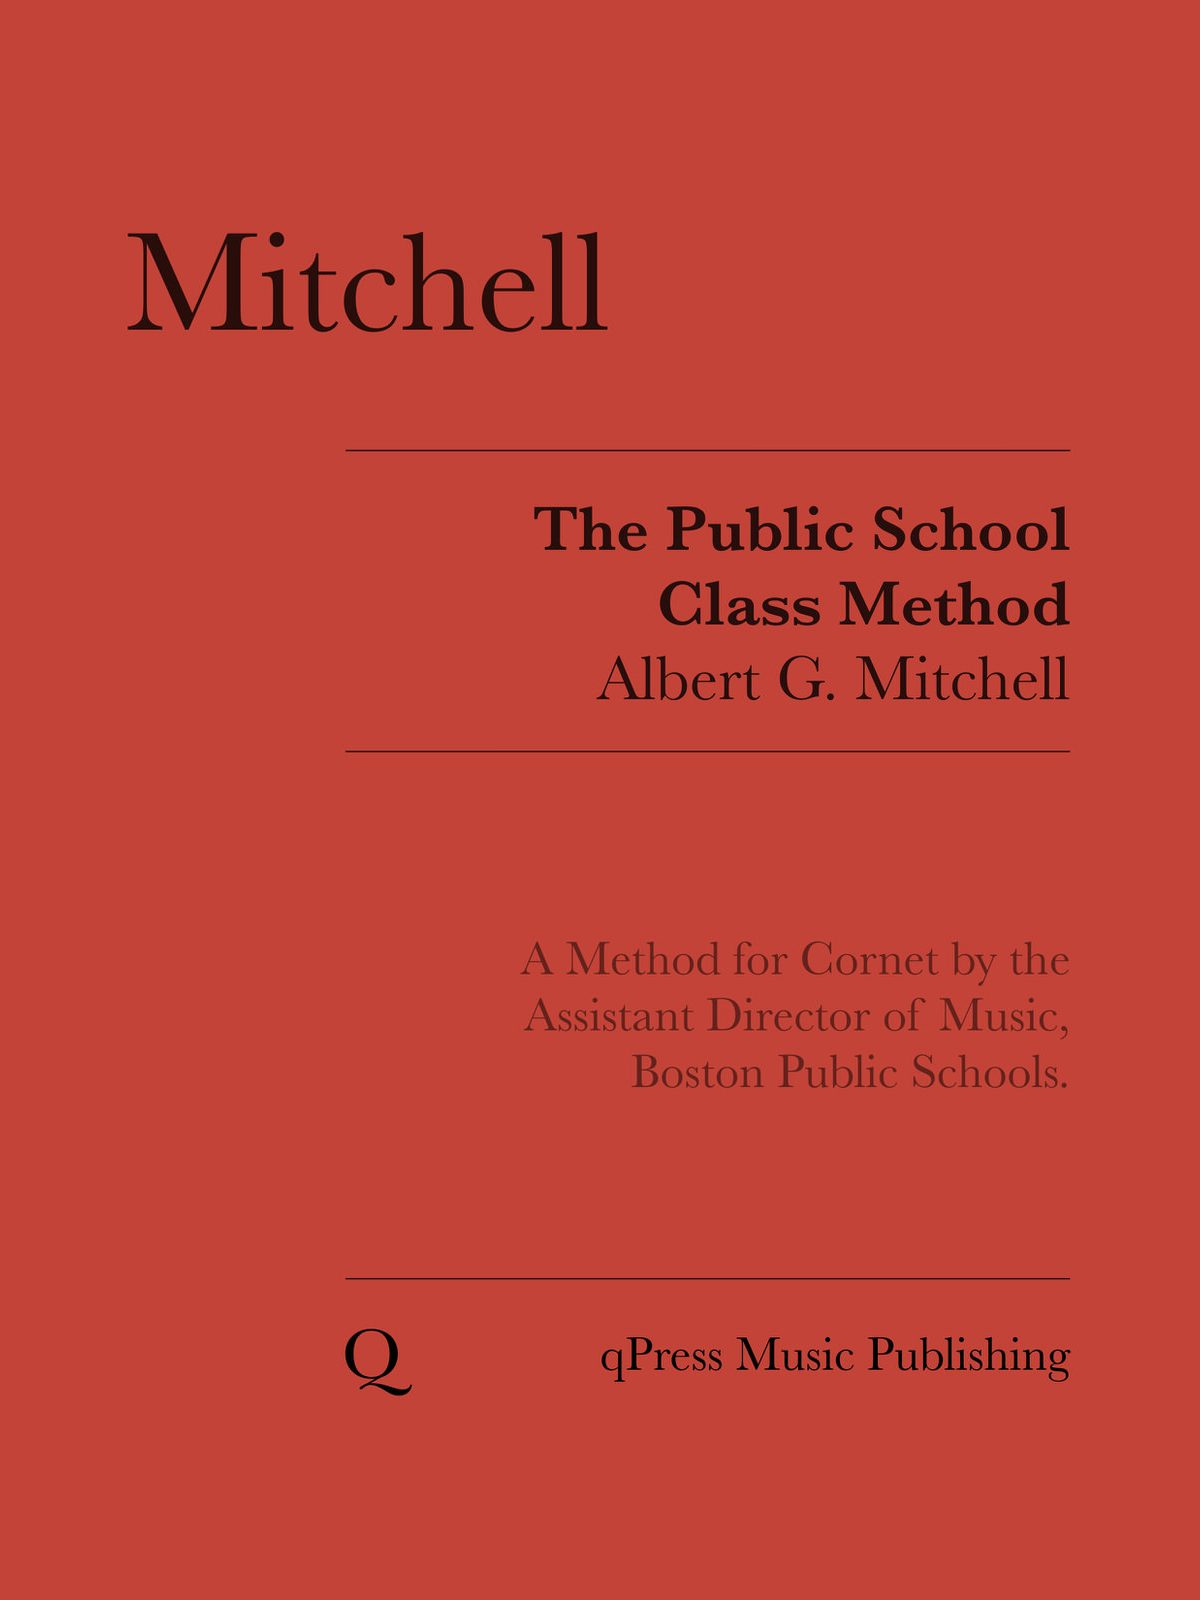 Mitchell, Public School Class Method for the Cornet